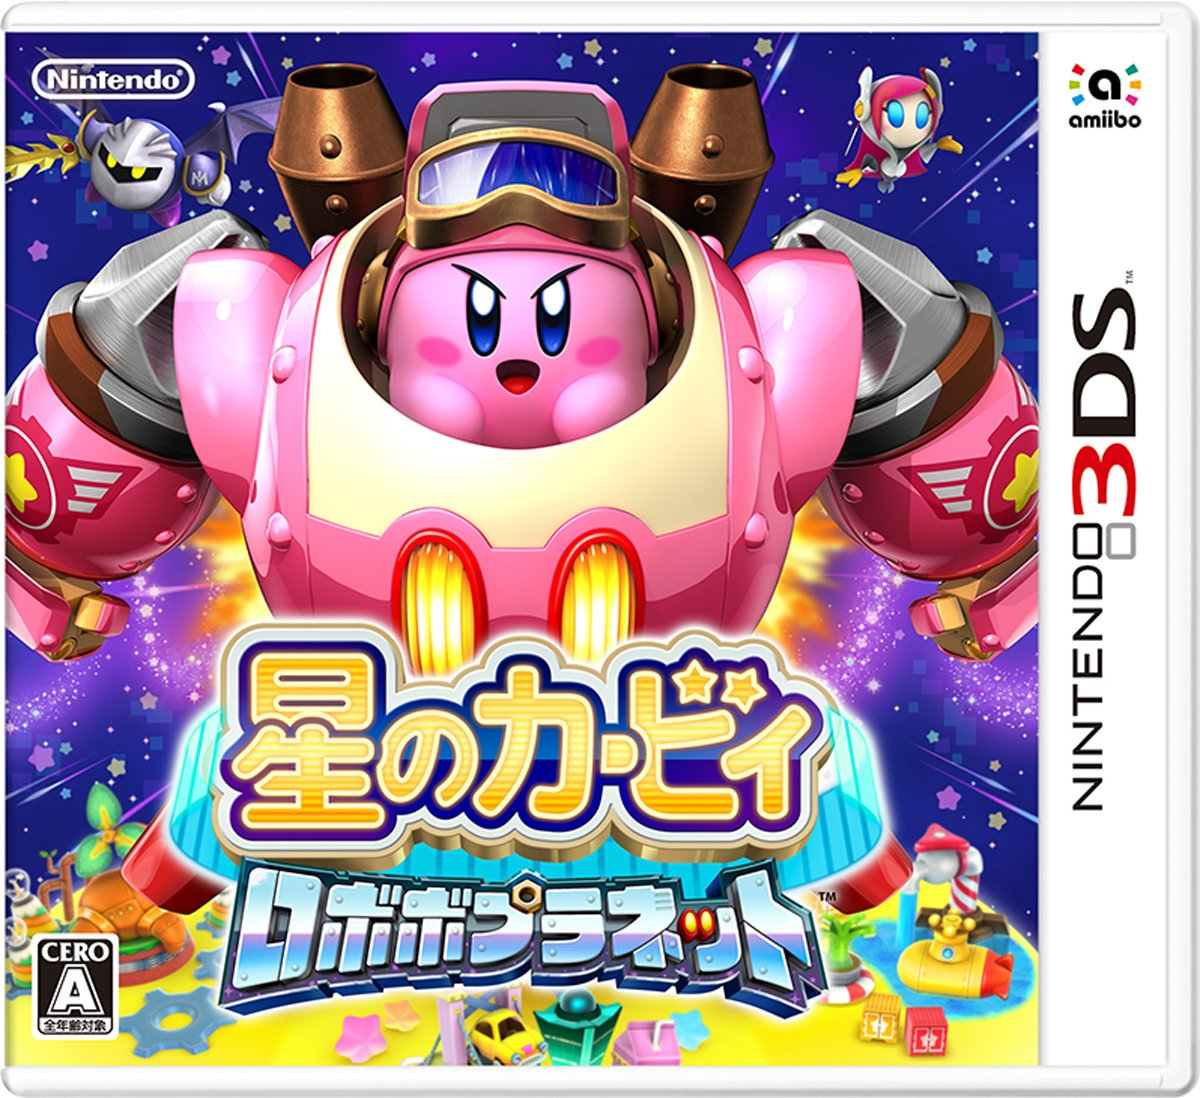 Damn, Kirby's pissed in Japan too this time https://t.co/DDy7CCEMFG